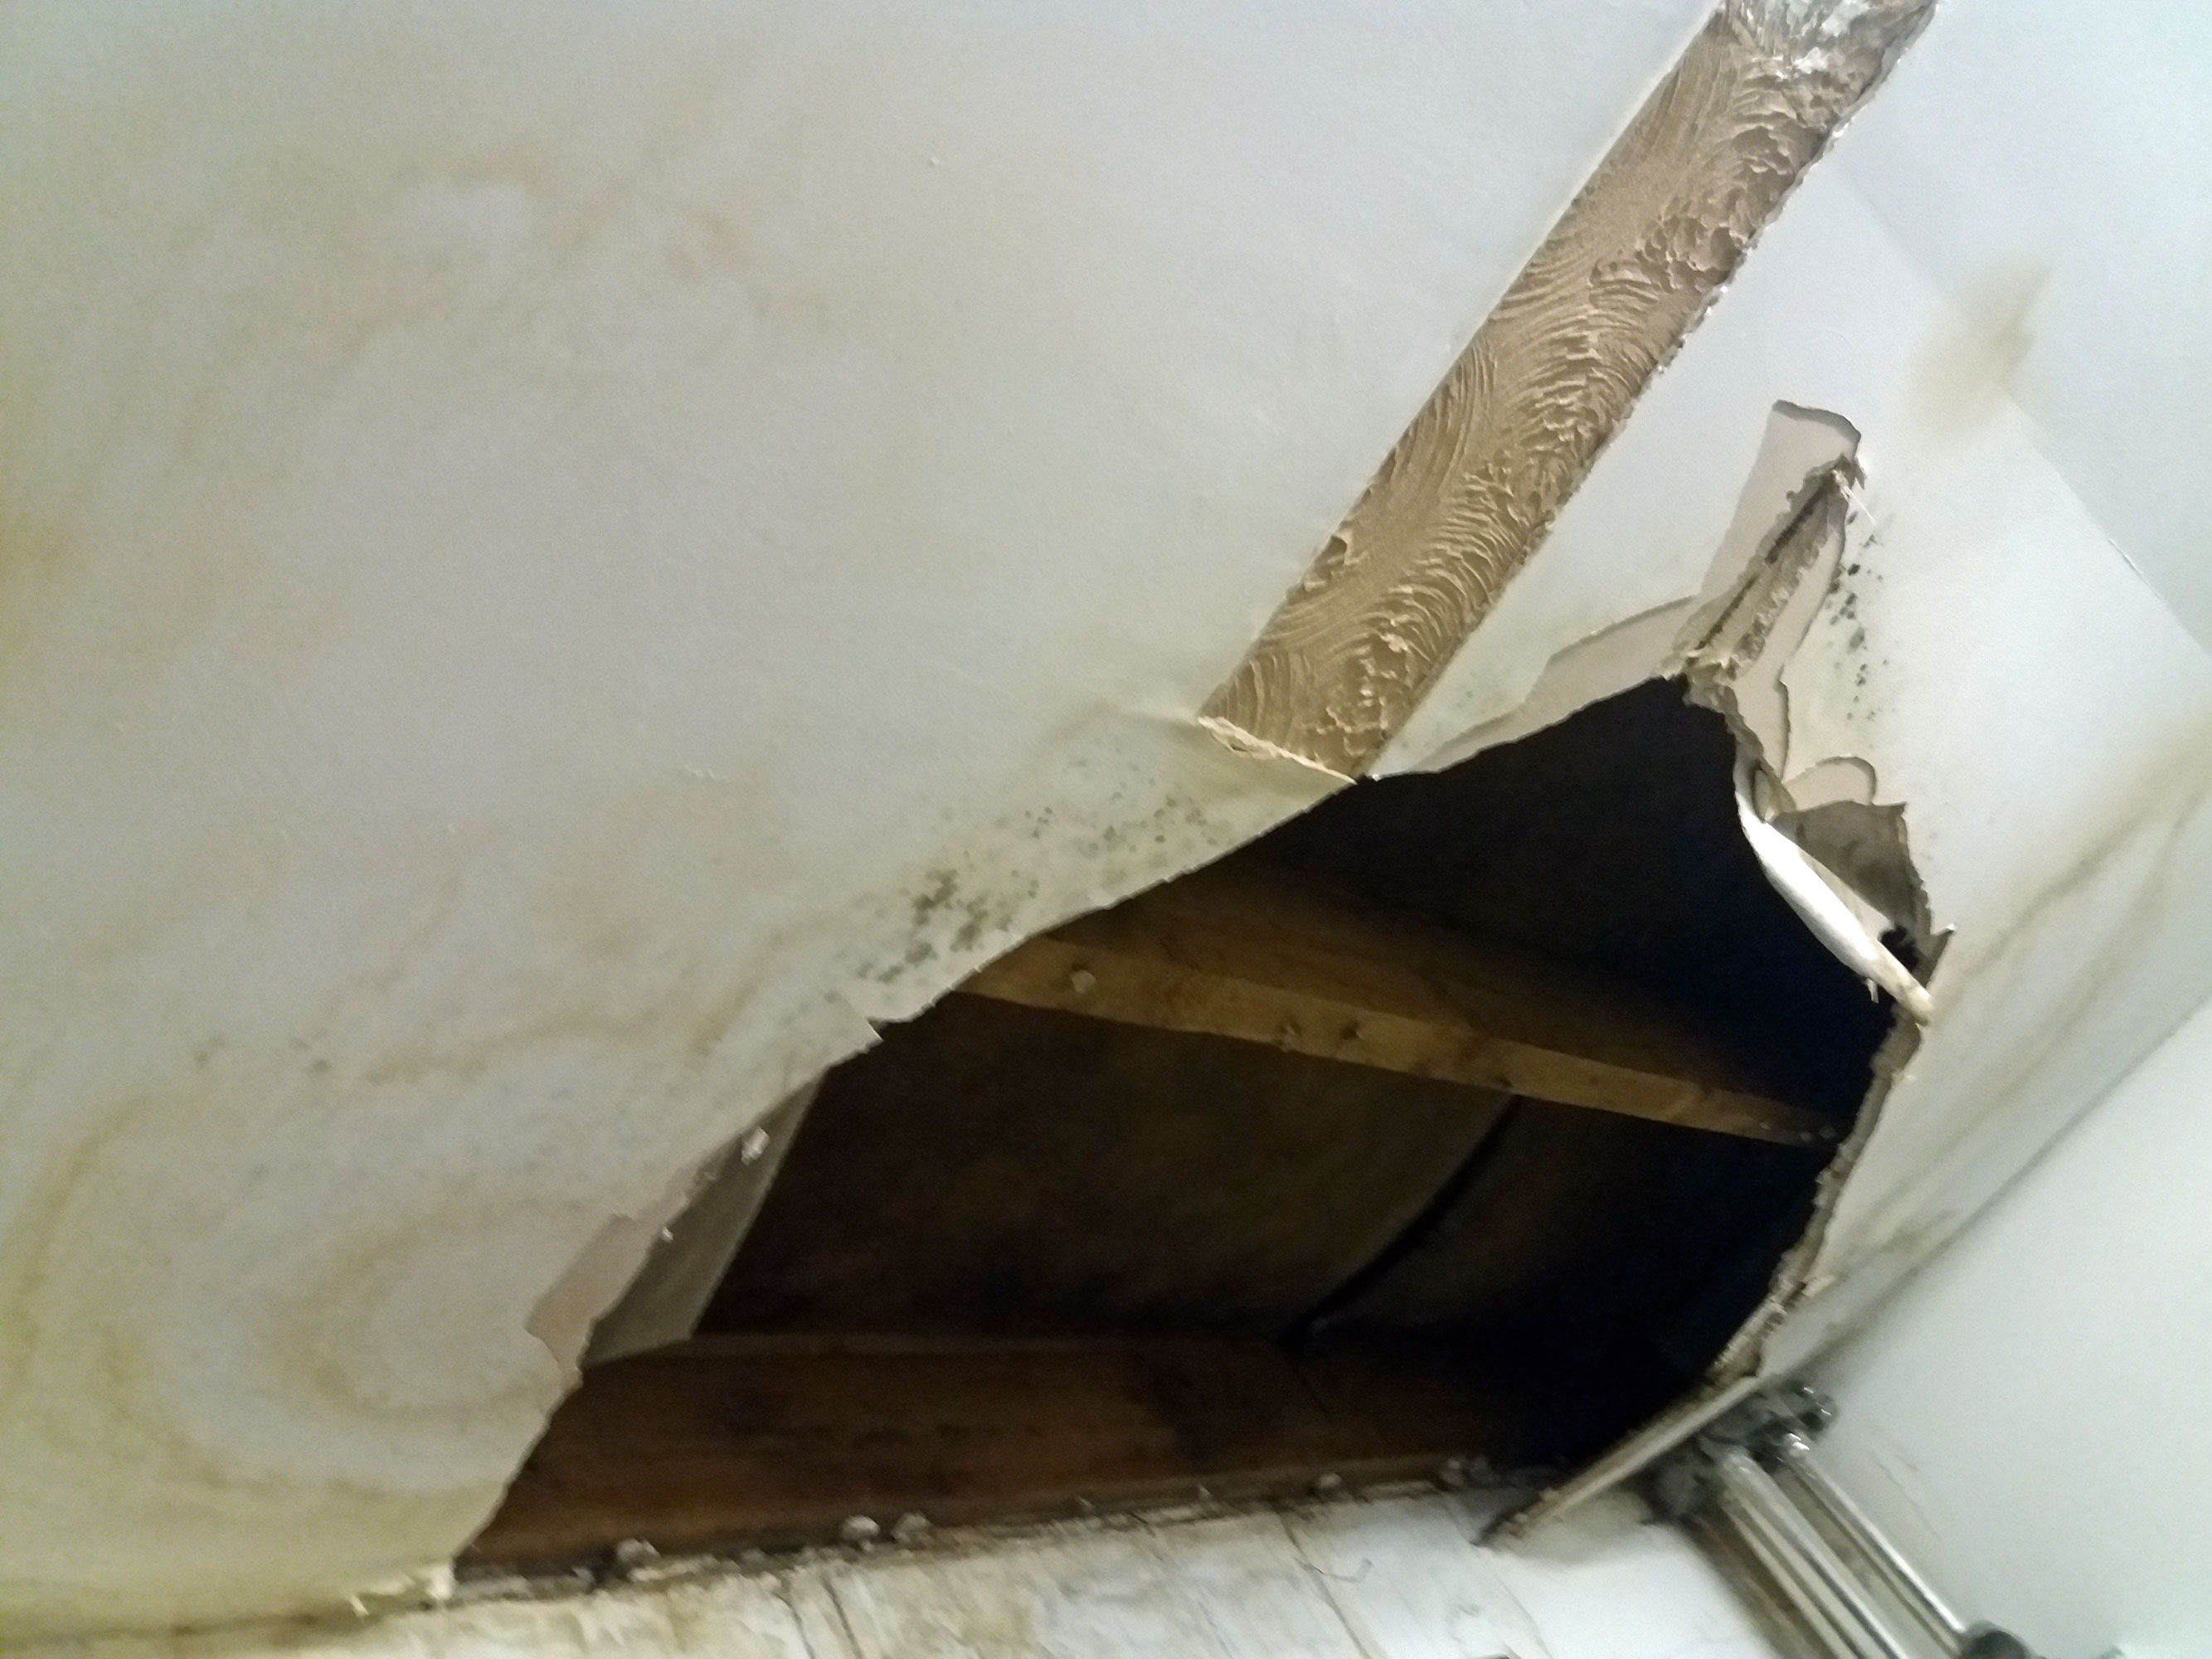 stained ceiling failed roof leak school